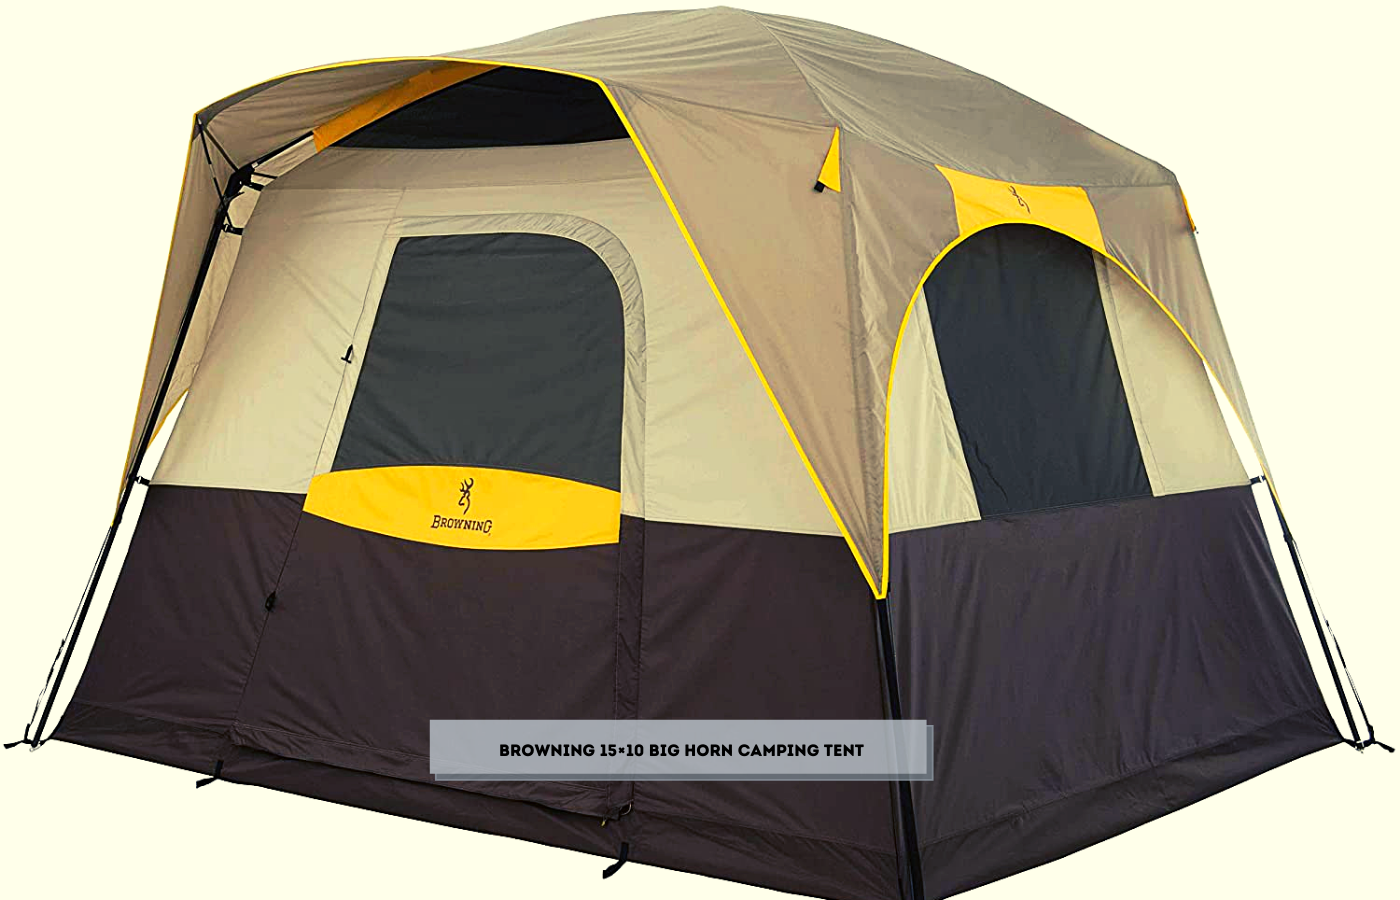 Browning 15×10 Big Horn Camping Tent